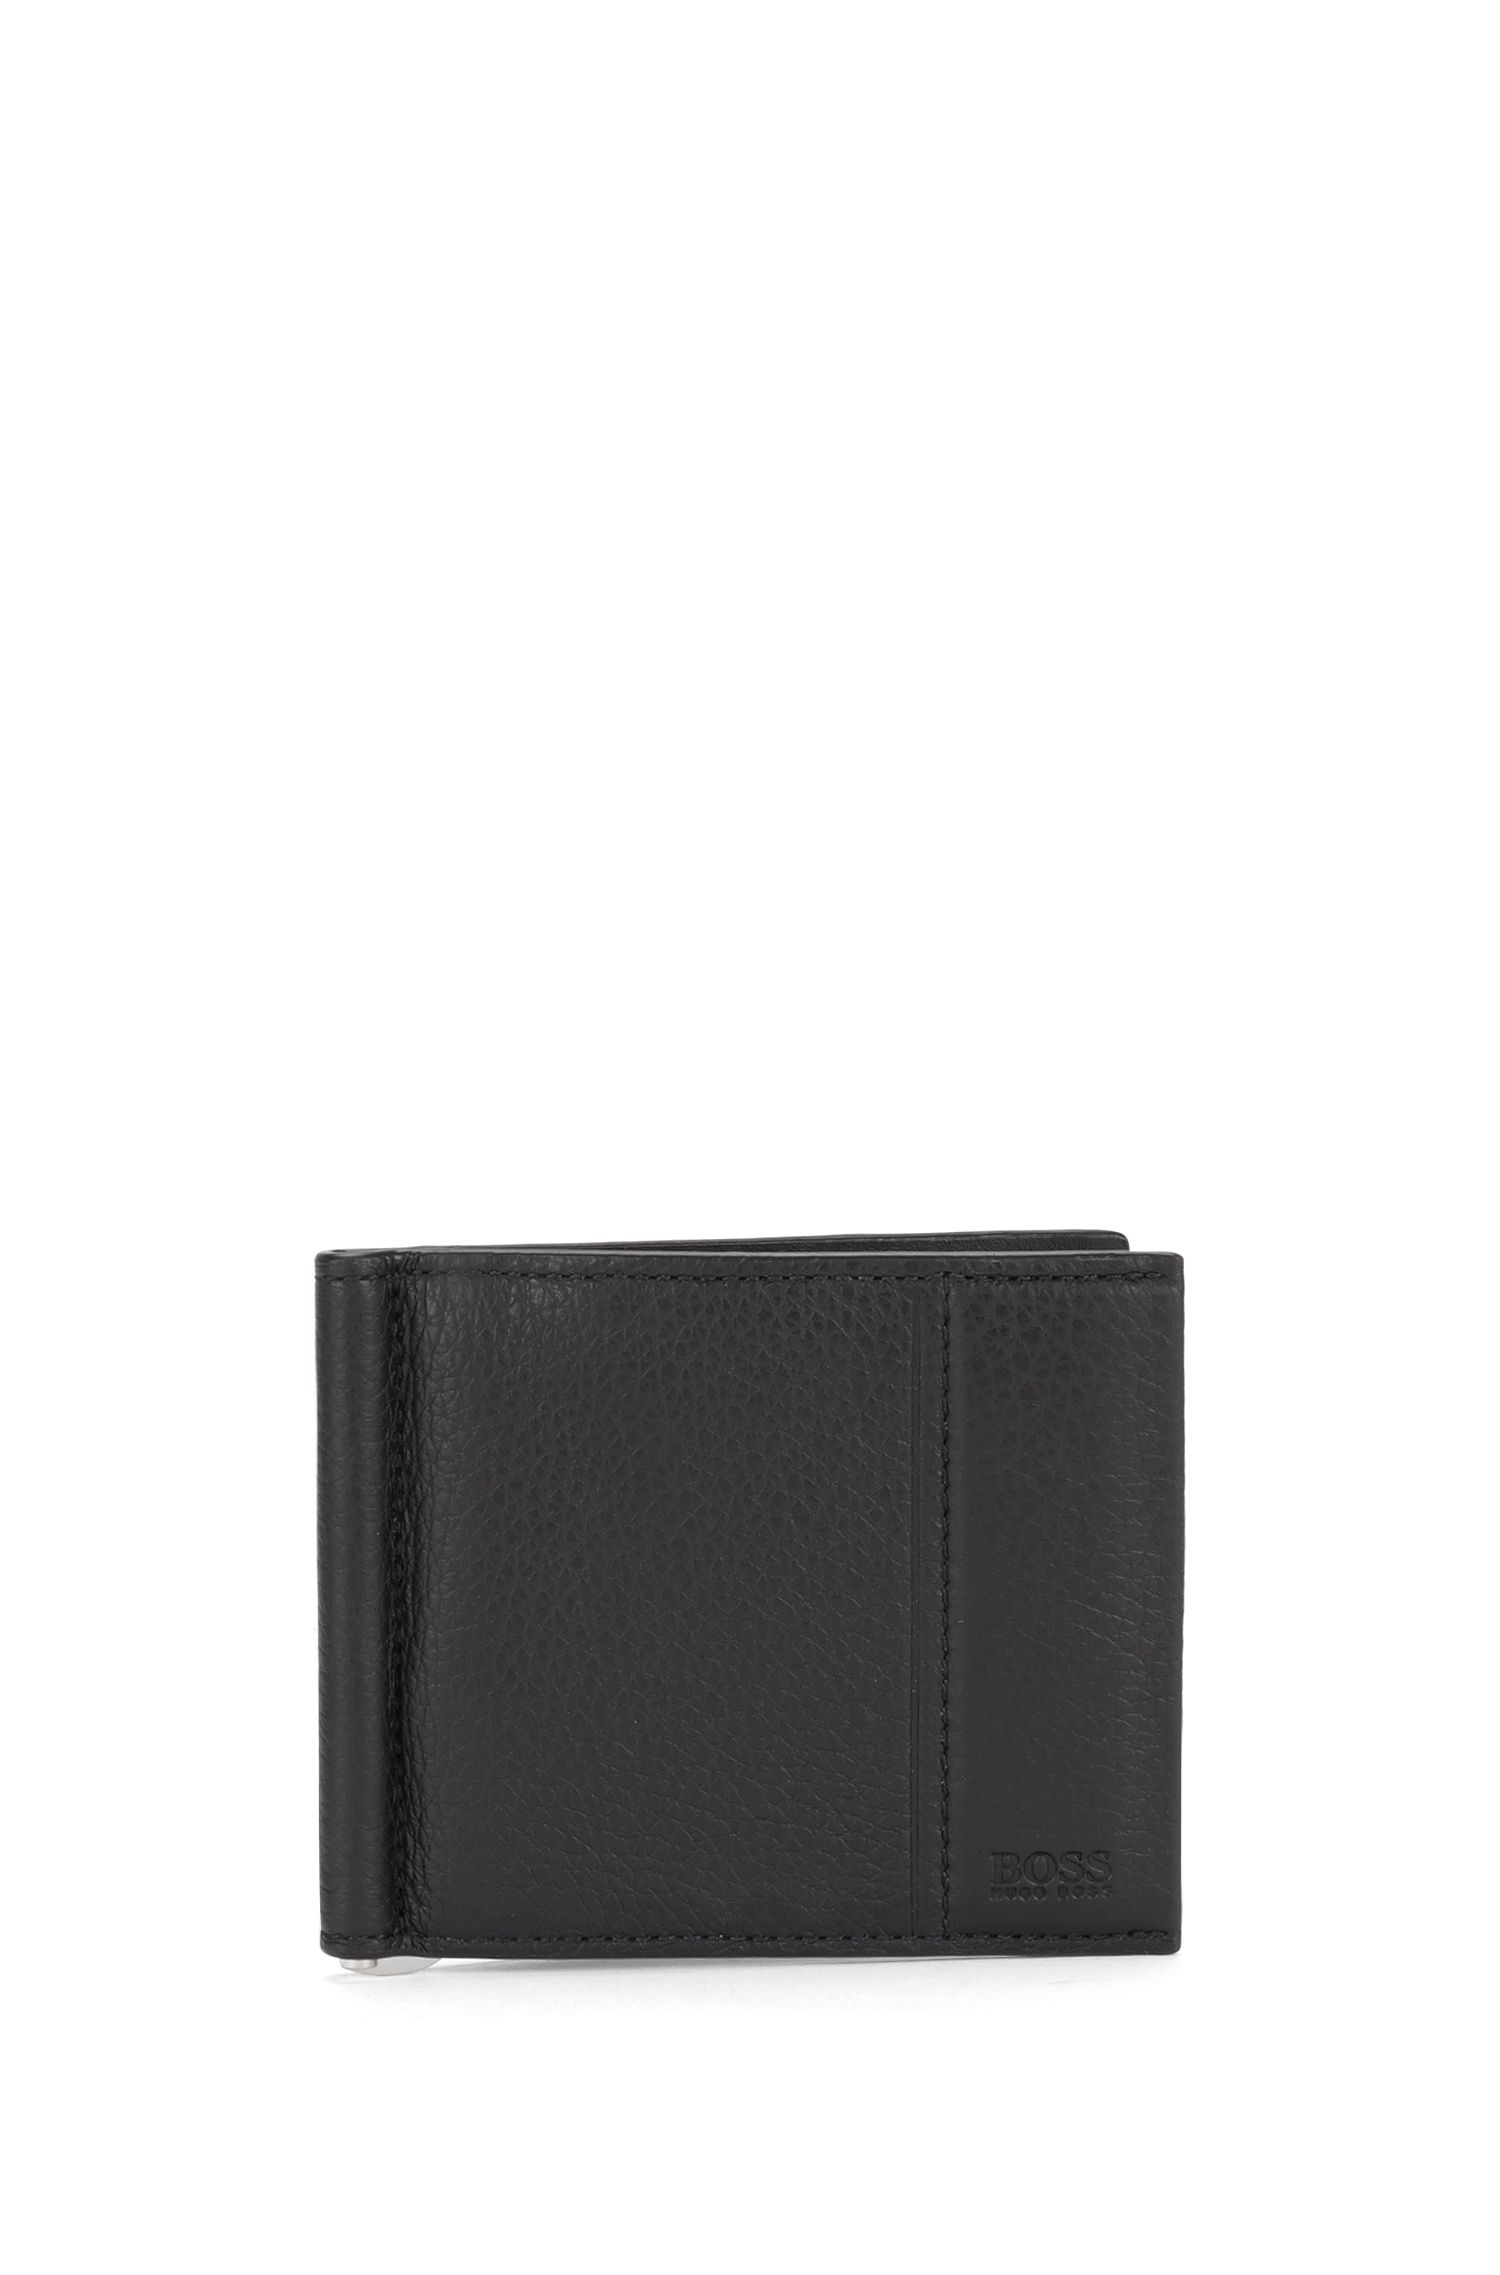 Leather wallet with money clip: 'Traveller_6 cc clip'